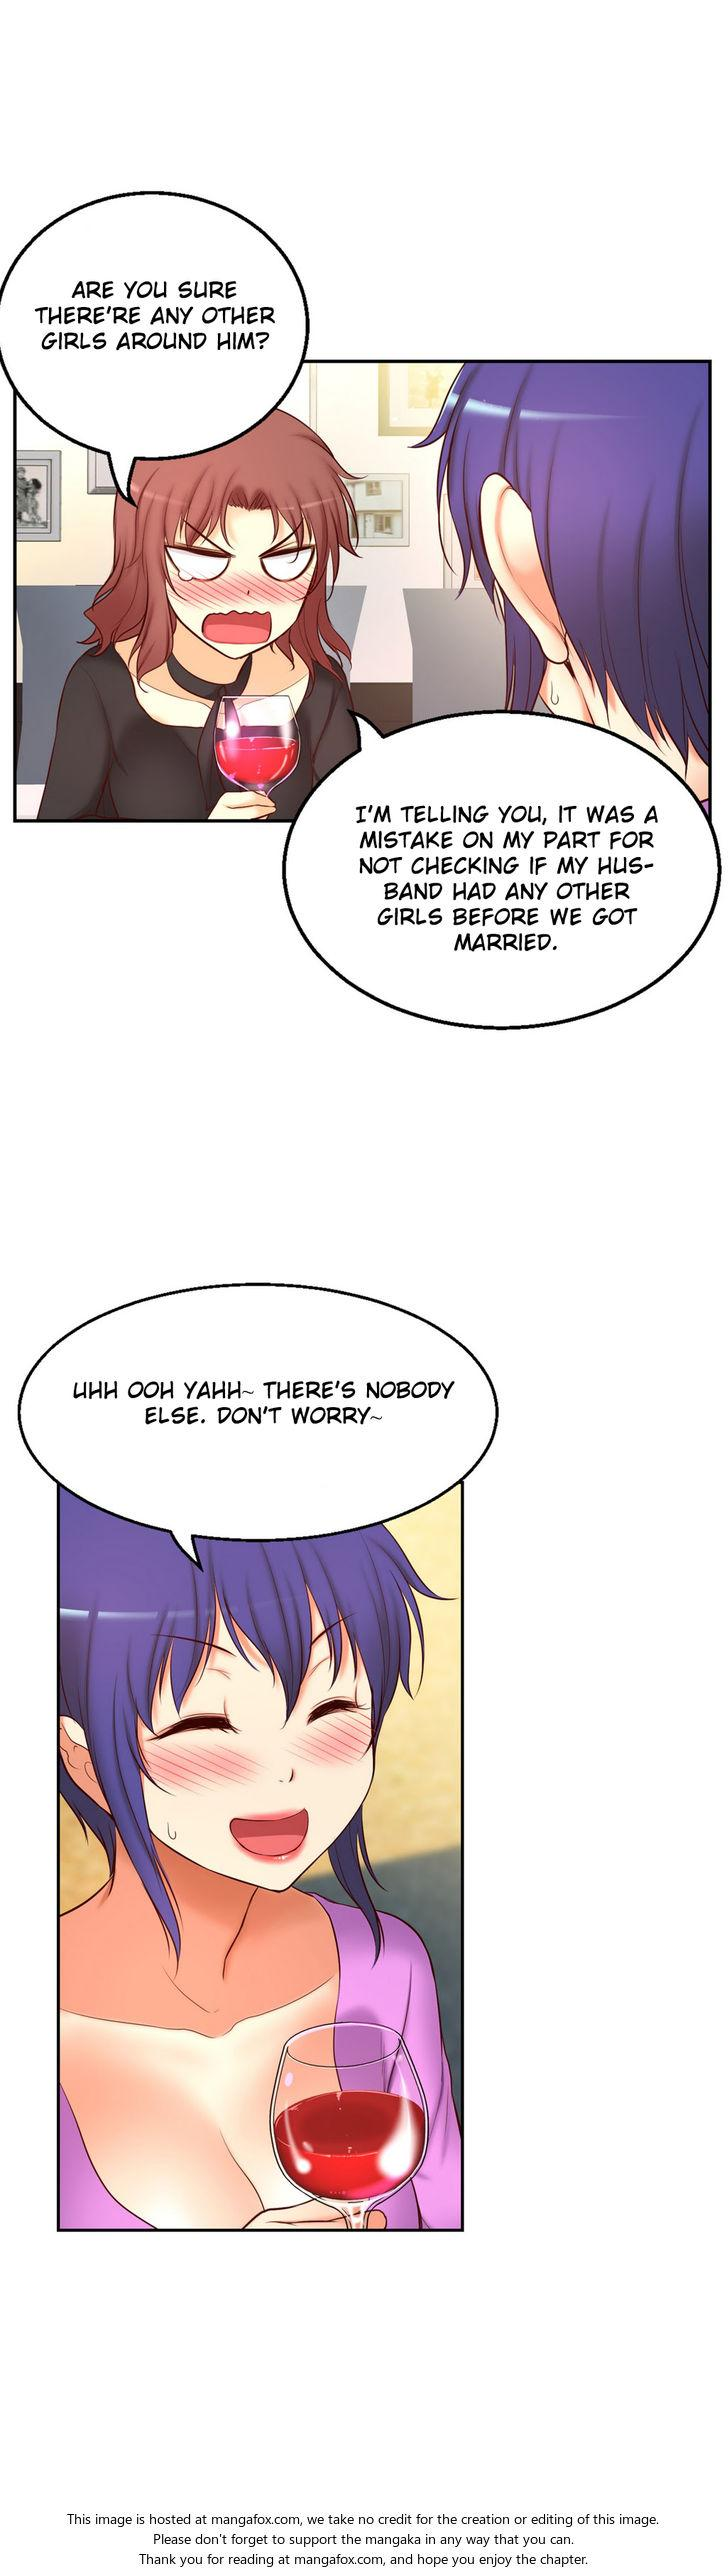 [Donggul Gom] She is Young (English) Part 1/2 1825